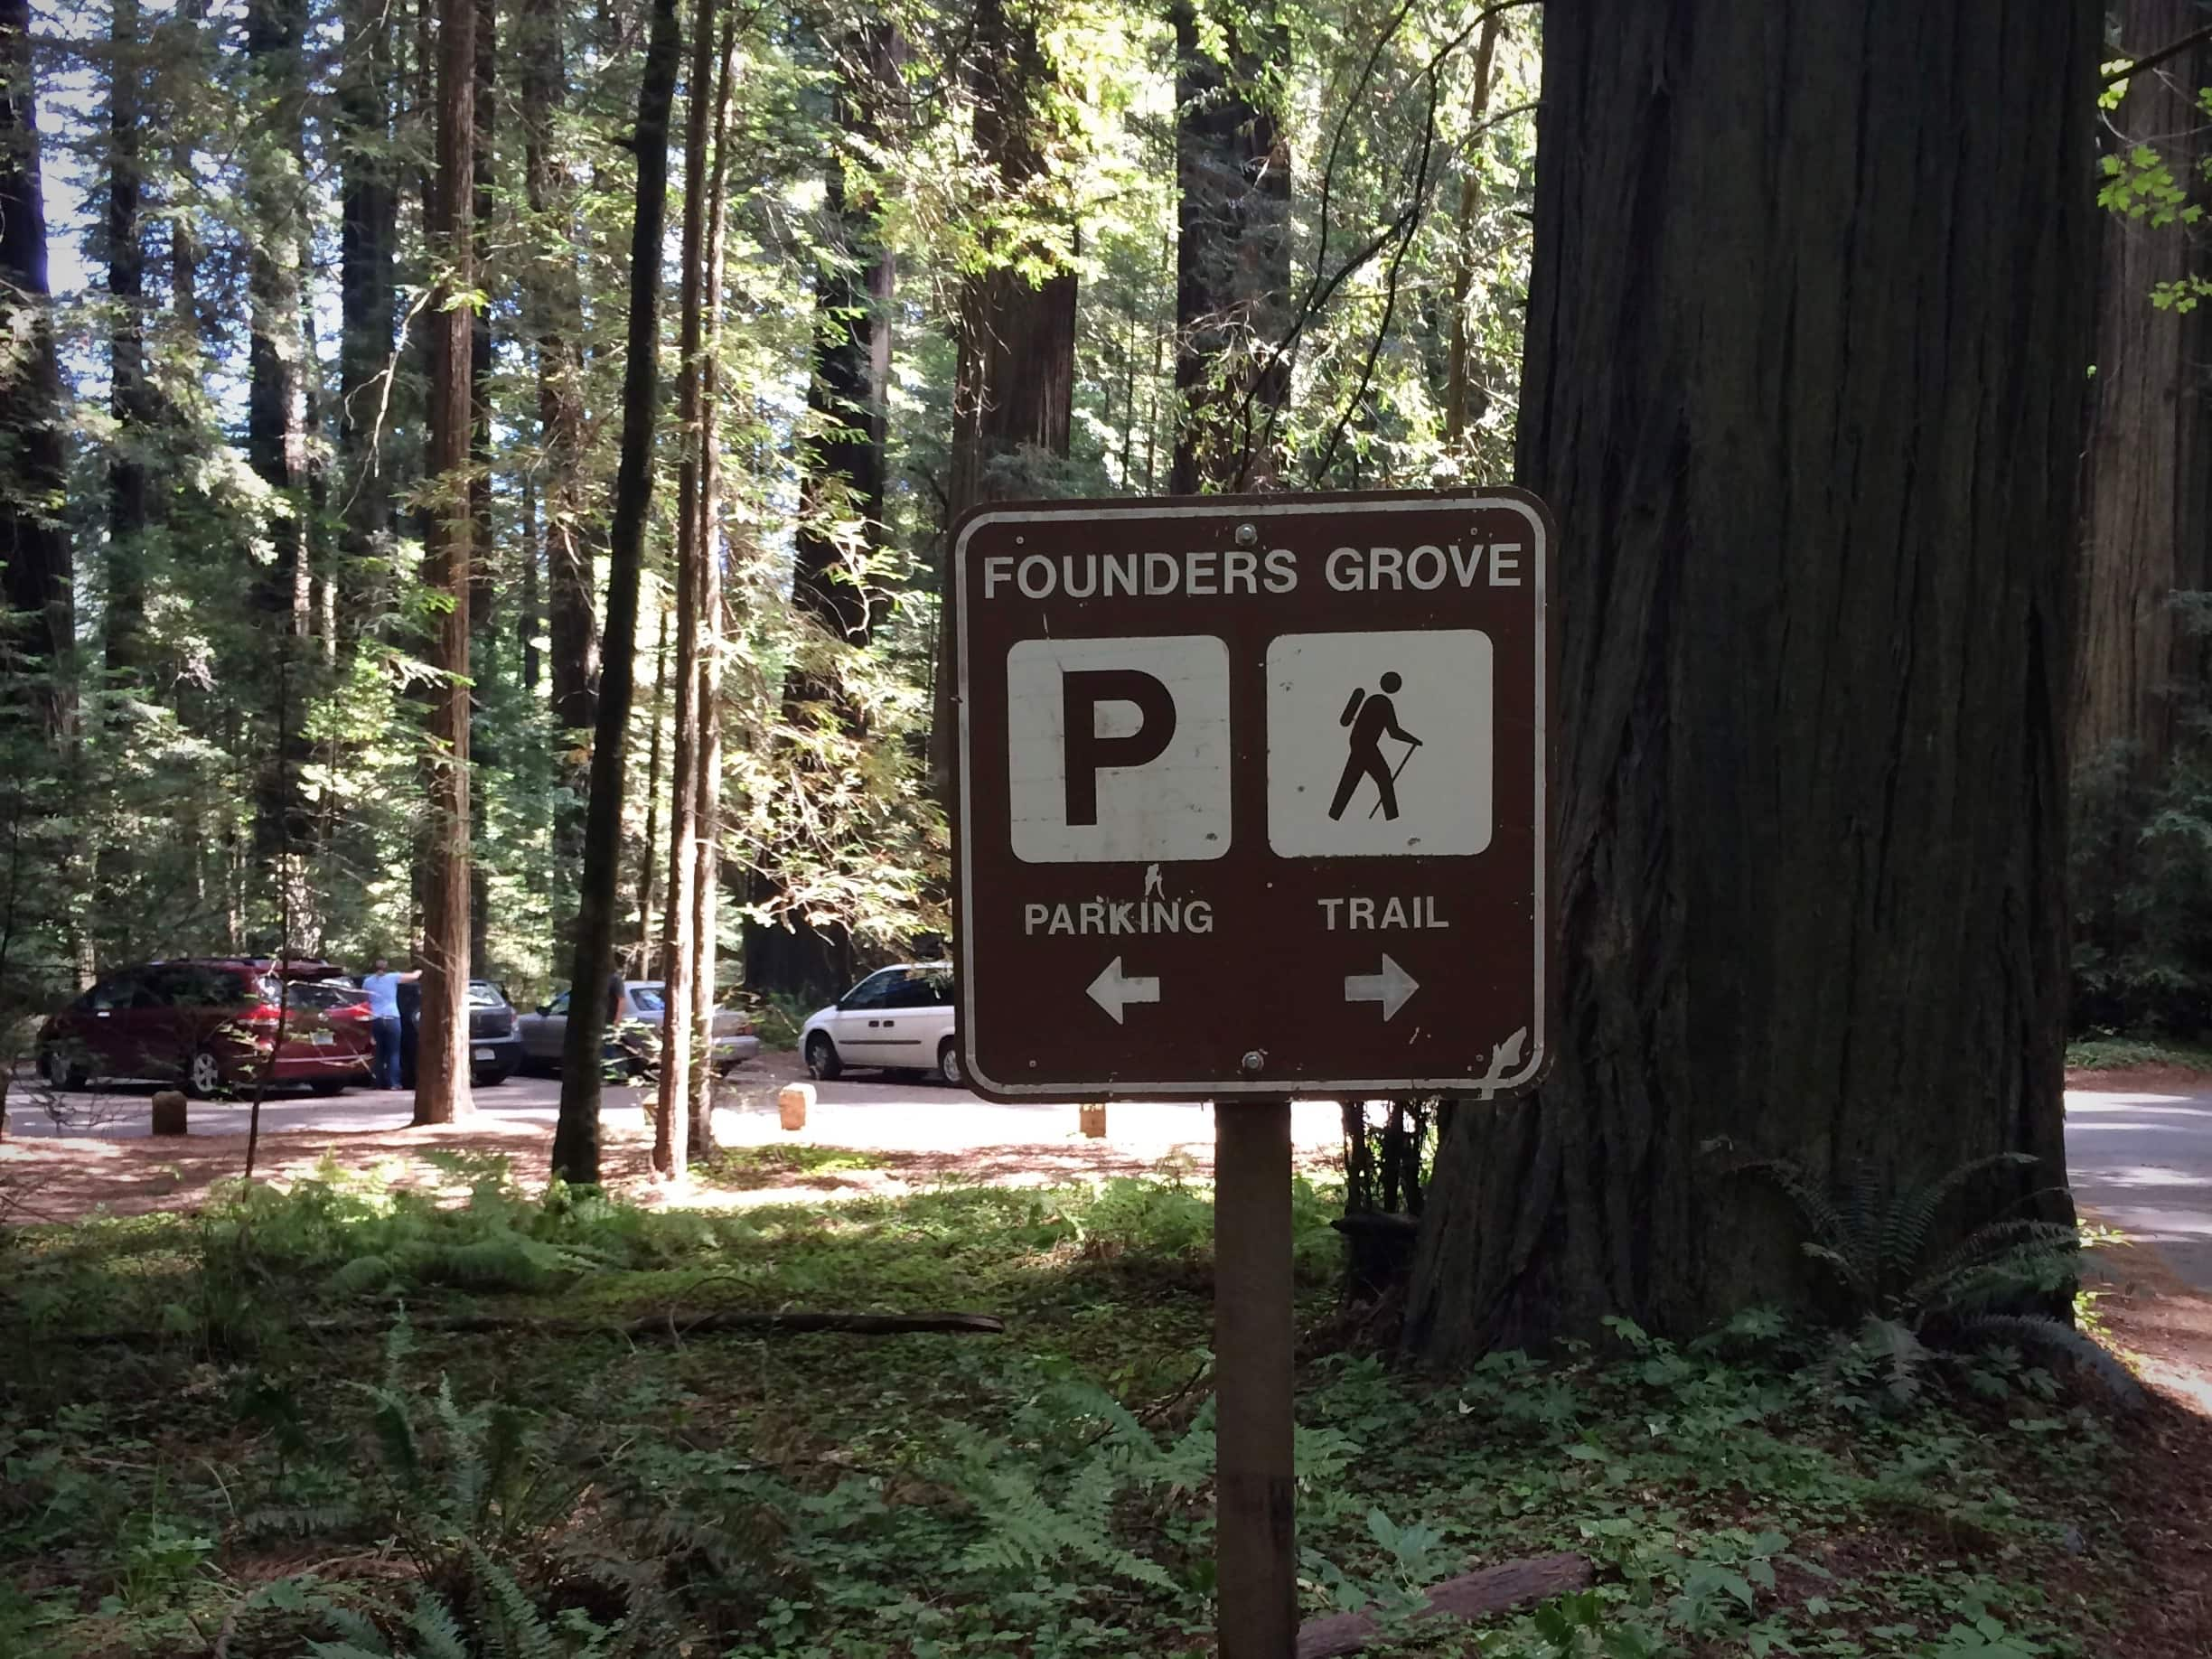 Parking area at Founders Grove along the Avenue of the Giants in northern california.